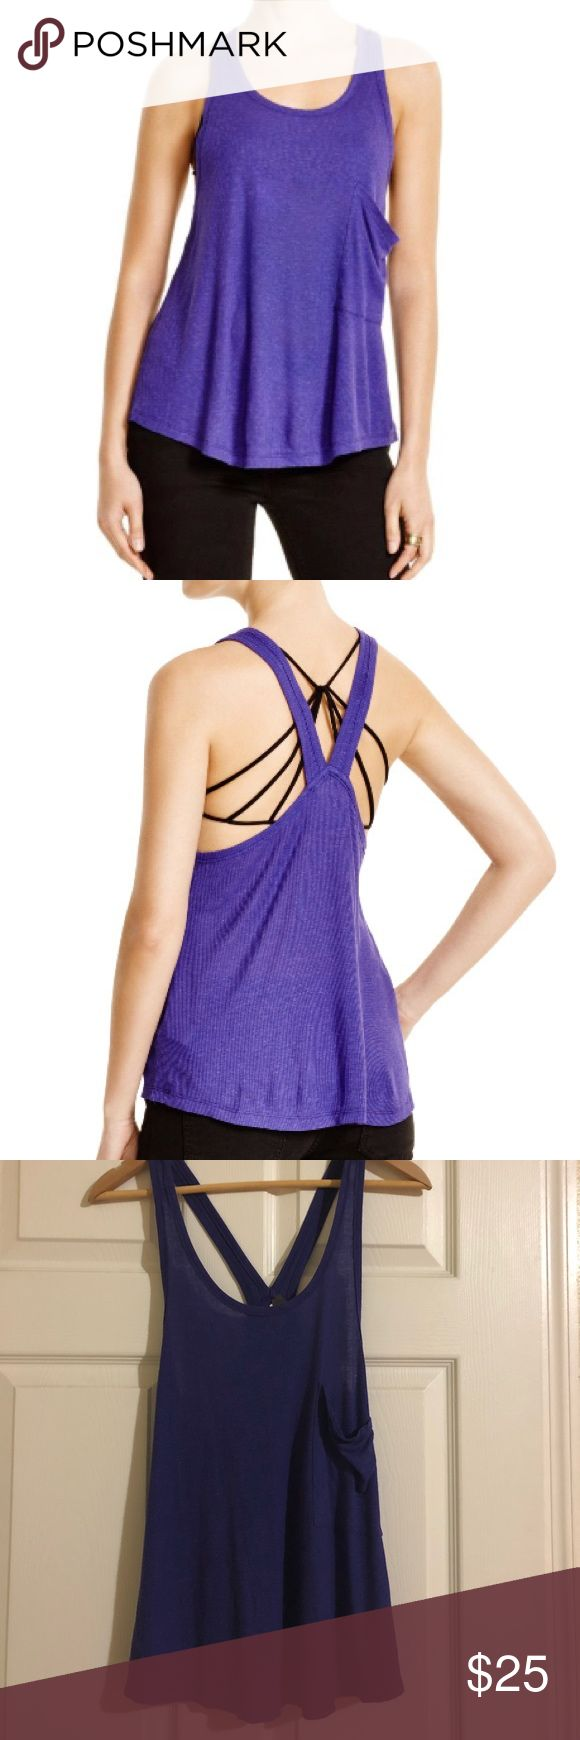 NEW Free People Purple Tank Top NEW Free People Purple Tank Top.  85% Rayon, 15% Linen   Please let me know if you have any questions. Free People Tops